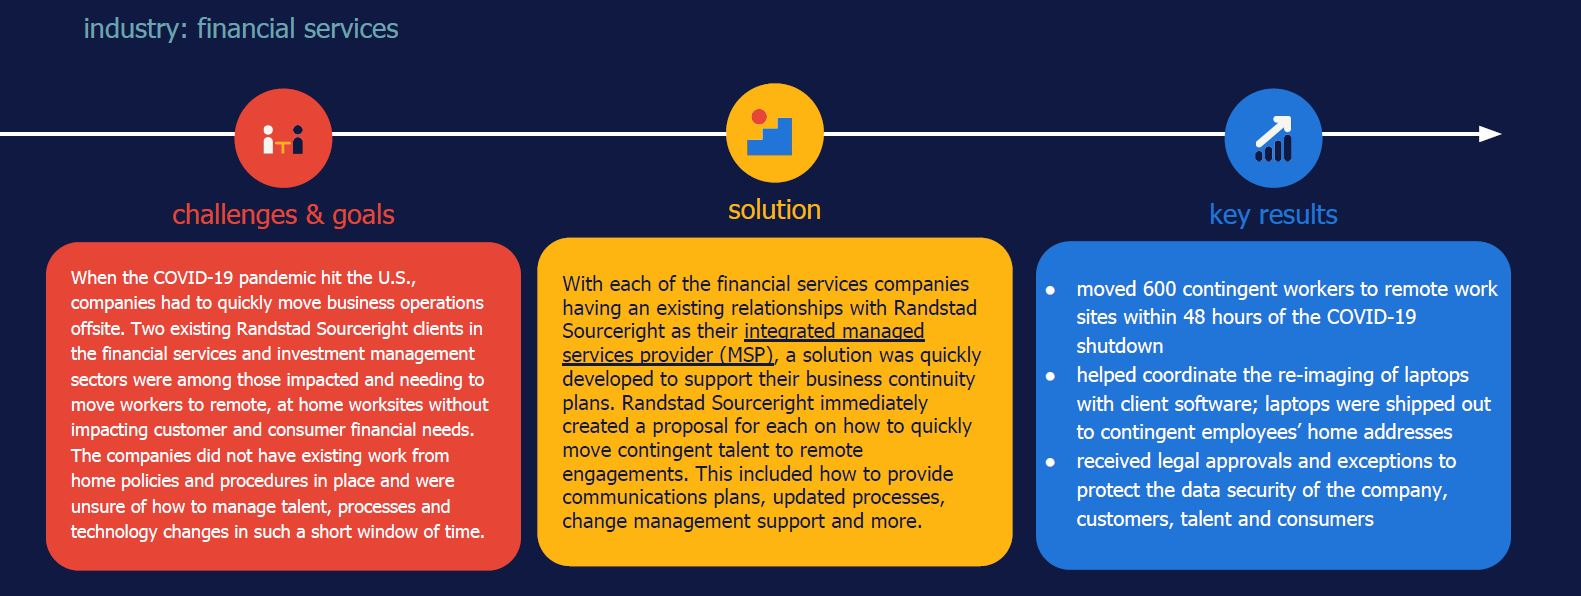 Randstad Sourceright integrated MSP case study business continuity during COVID-19